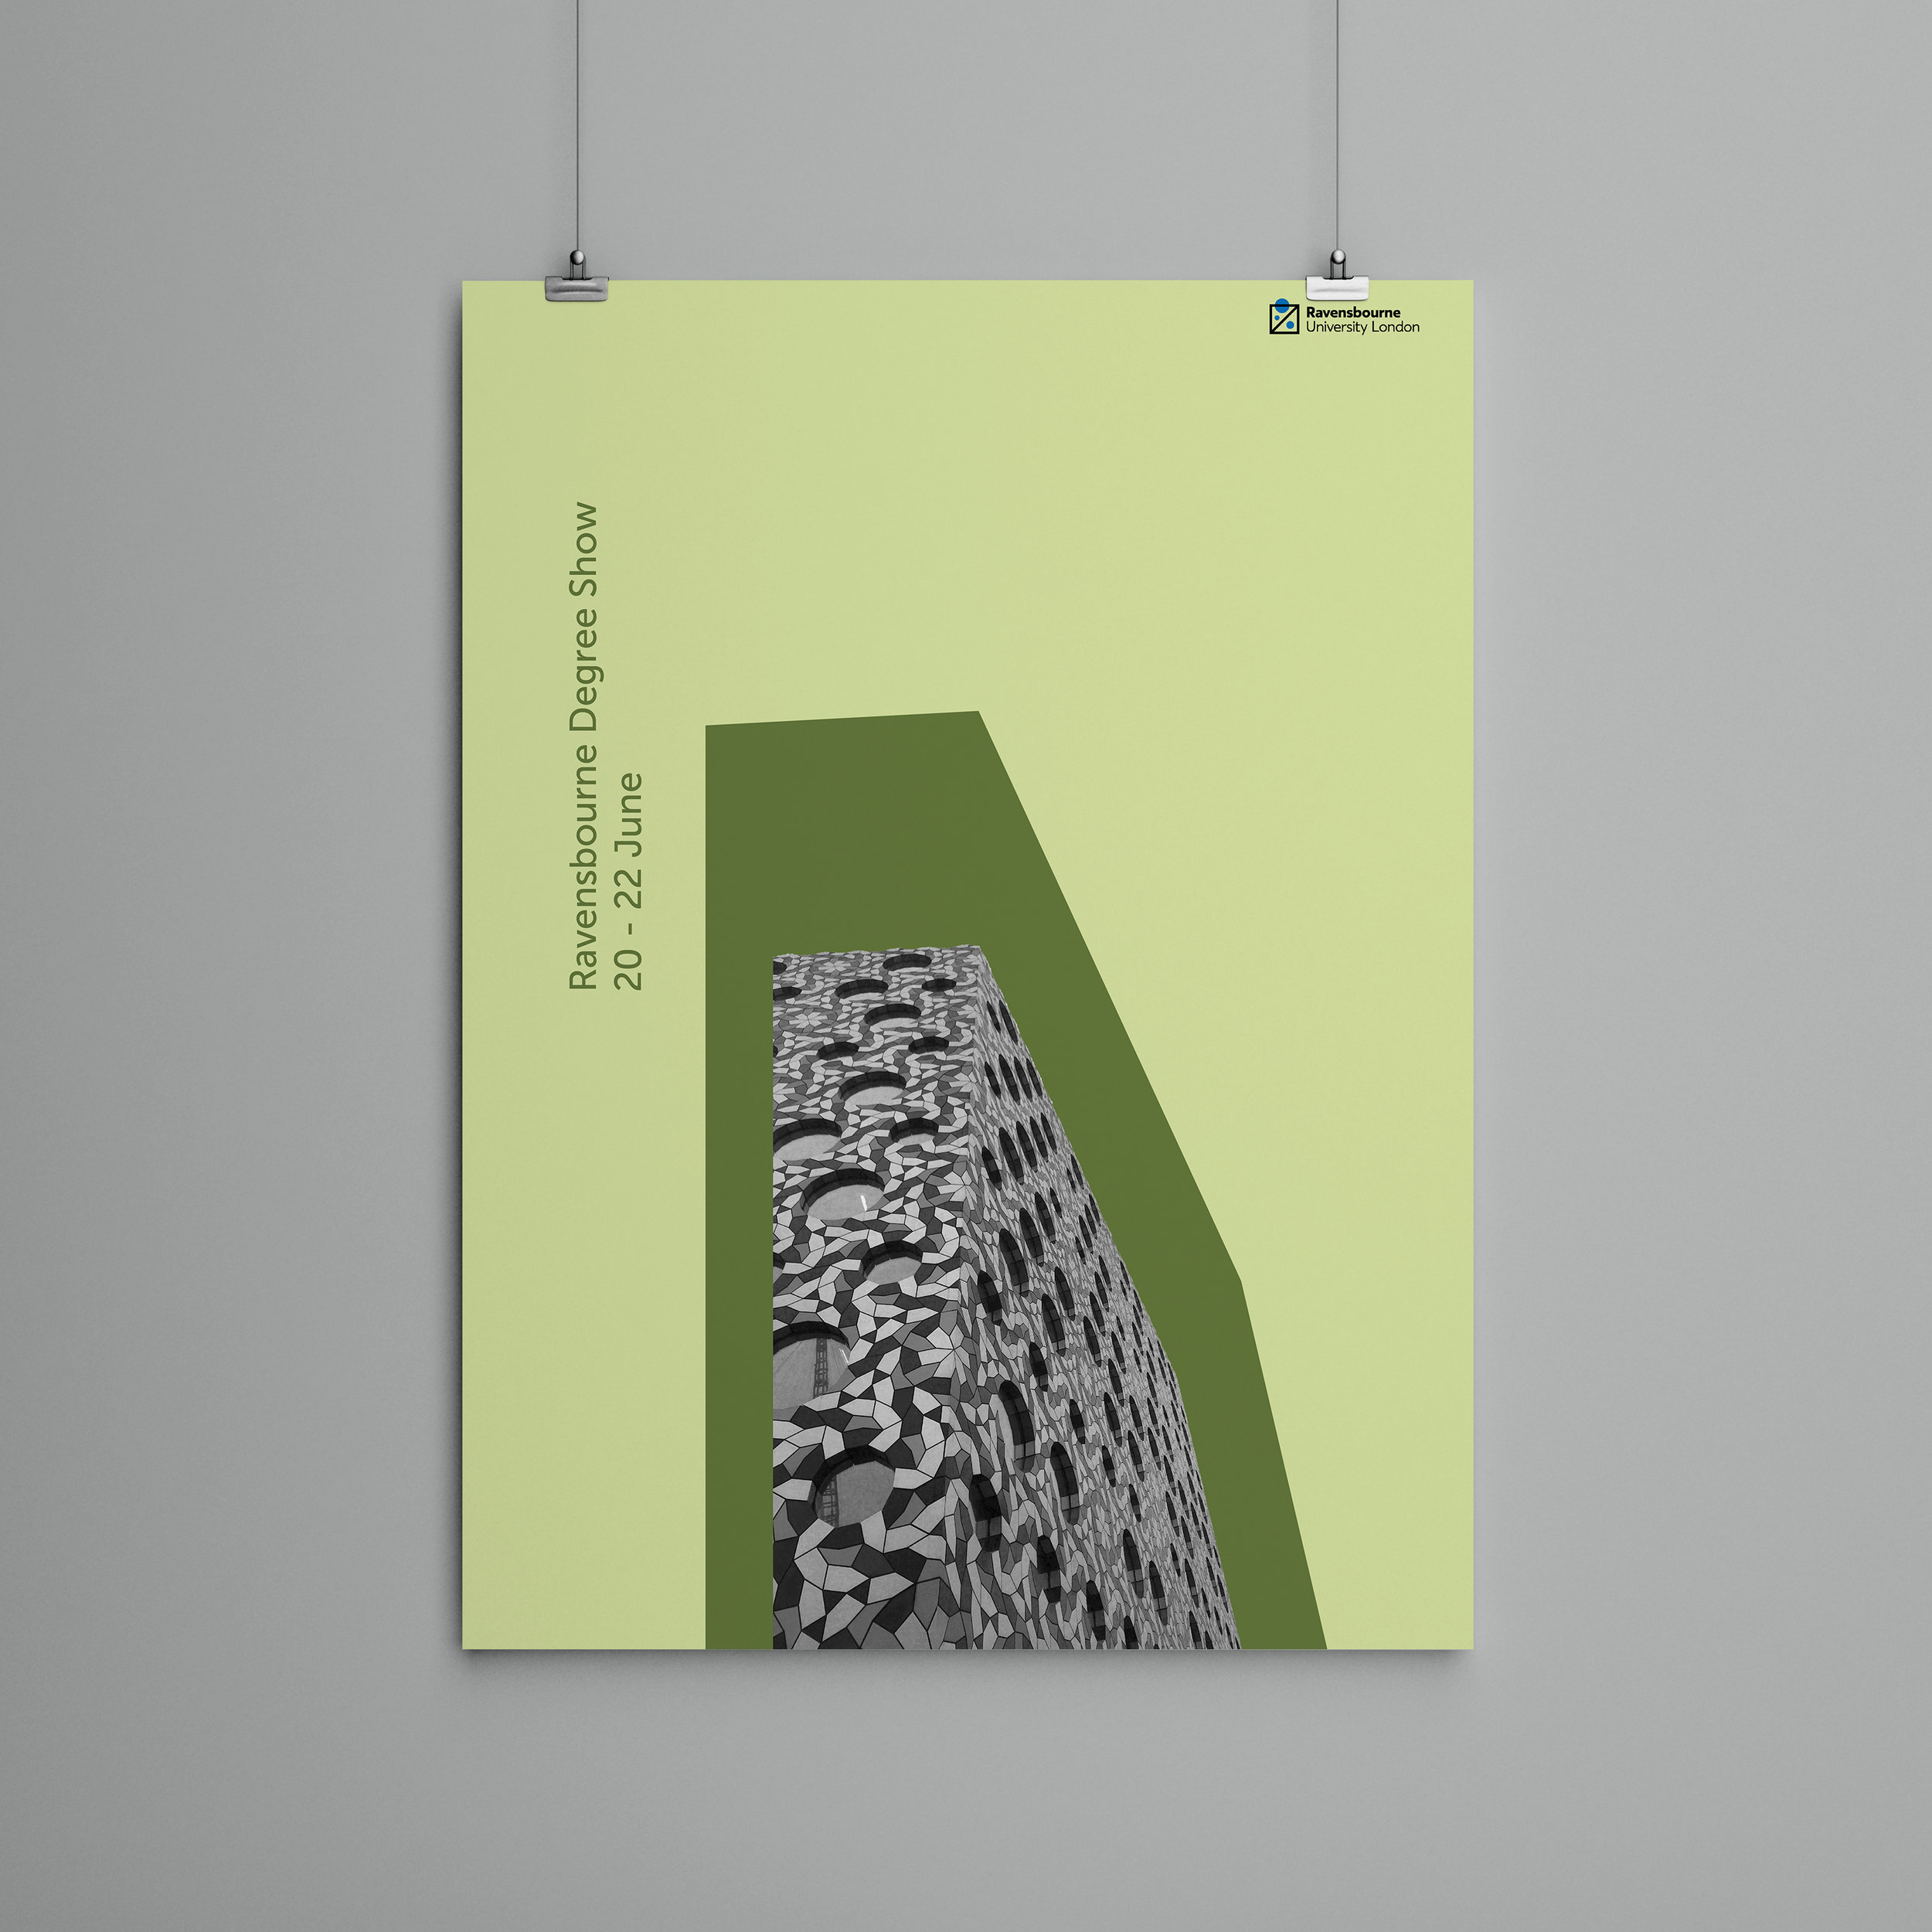 Paper Hanging With Clips Mockup For Poster Presentation.jpg